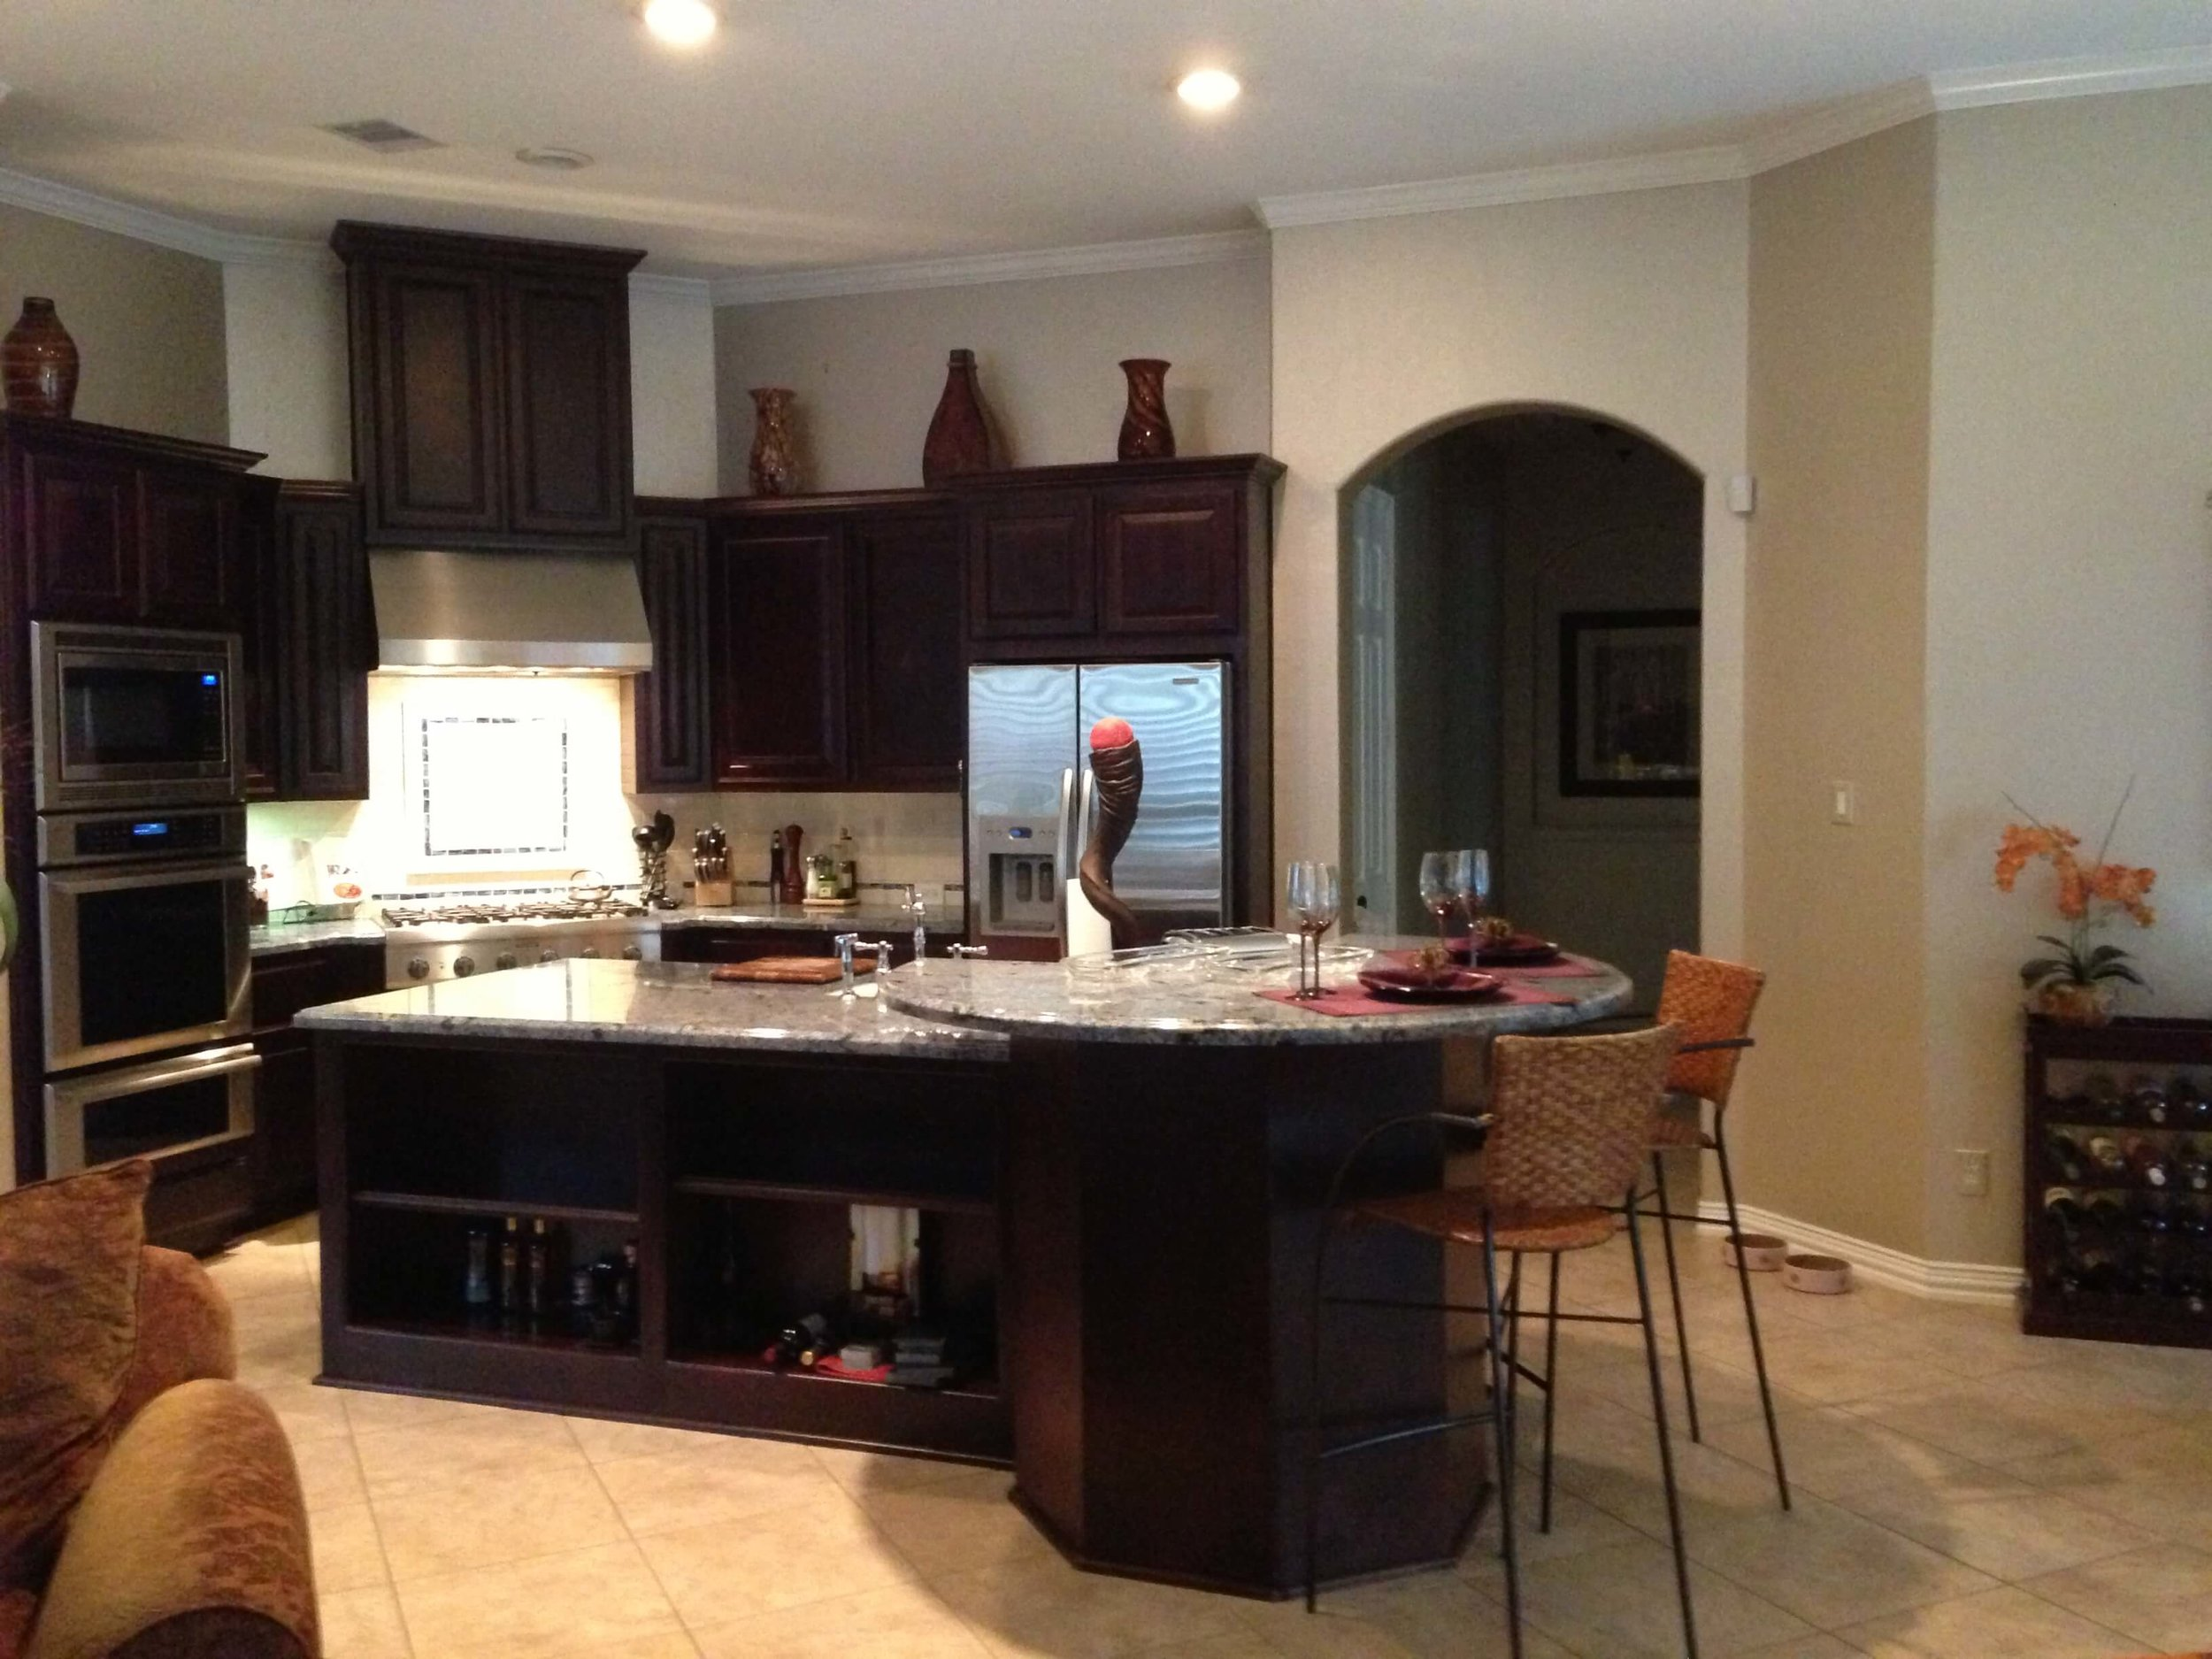 Before kitchen remodel with high bar shape on one end